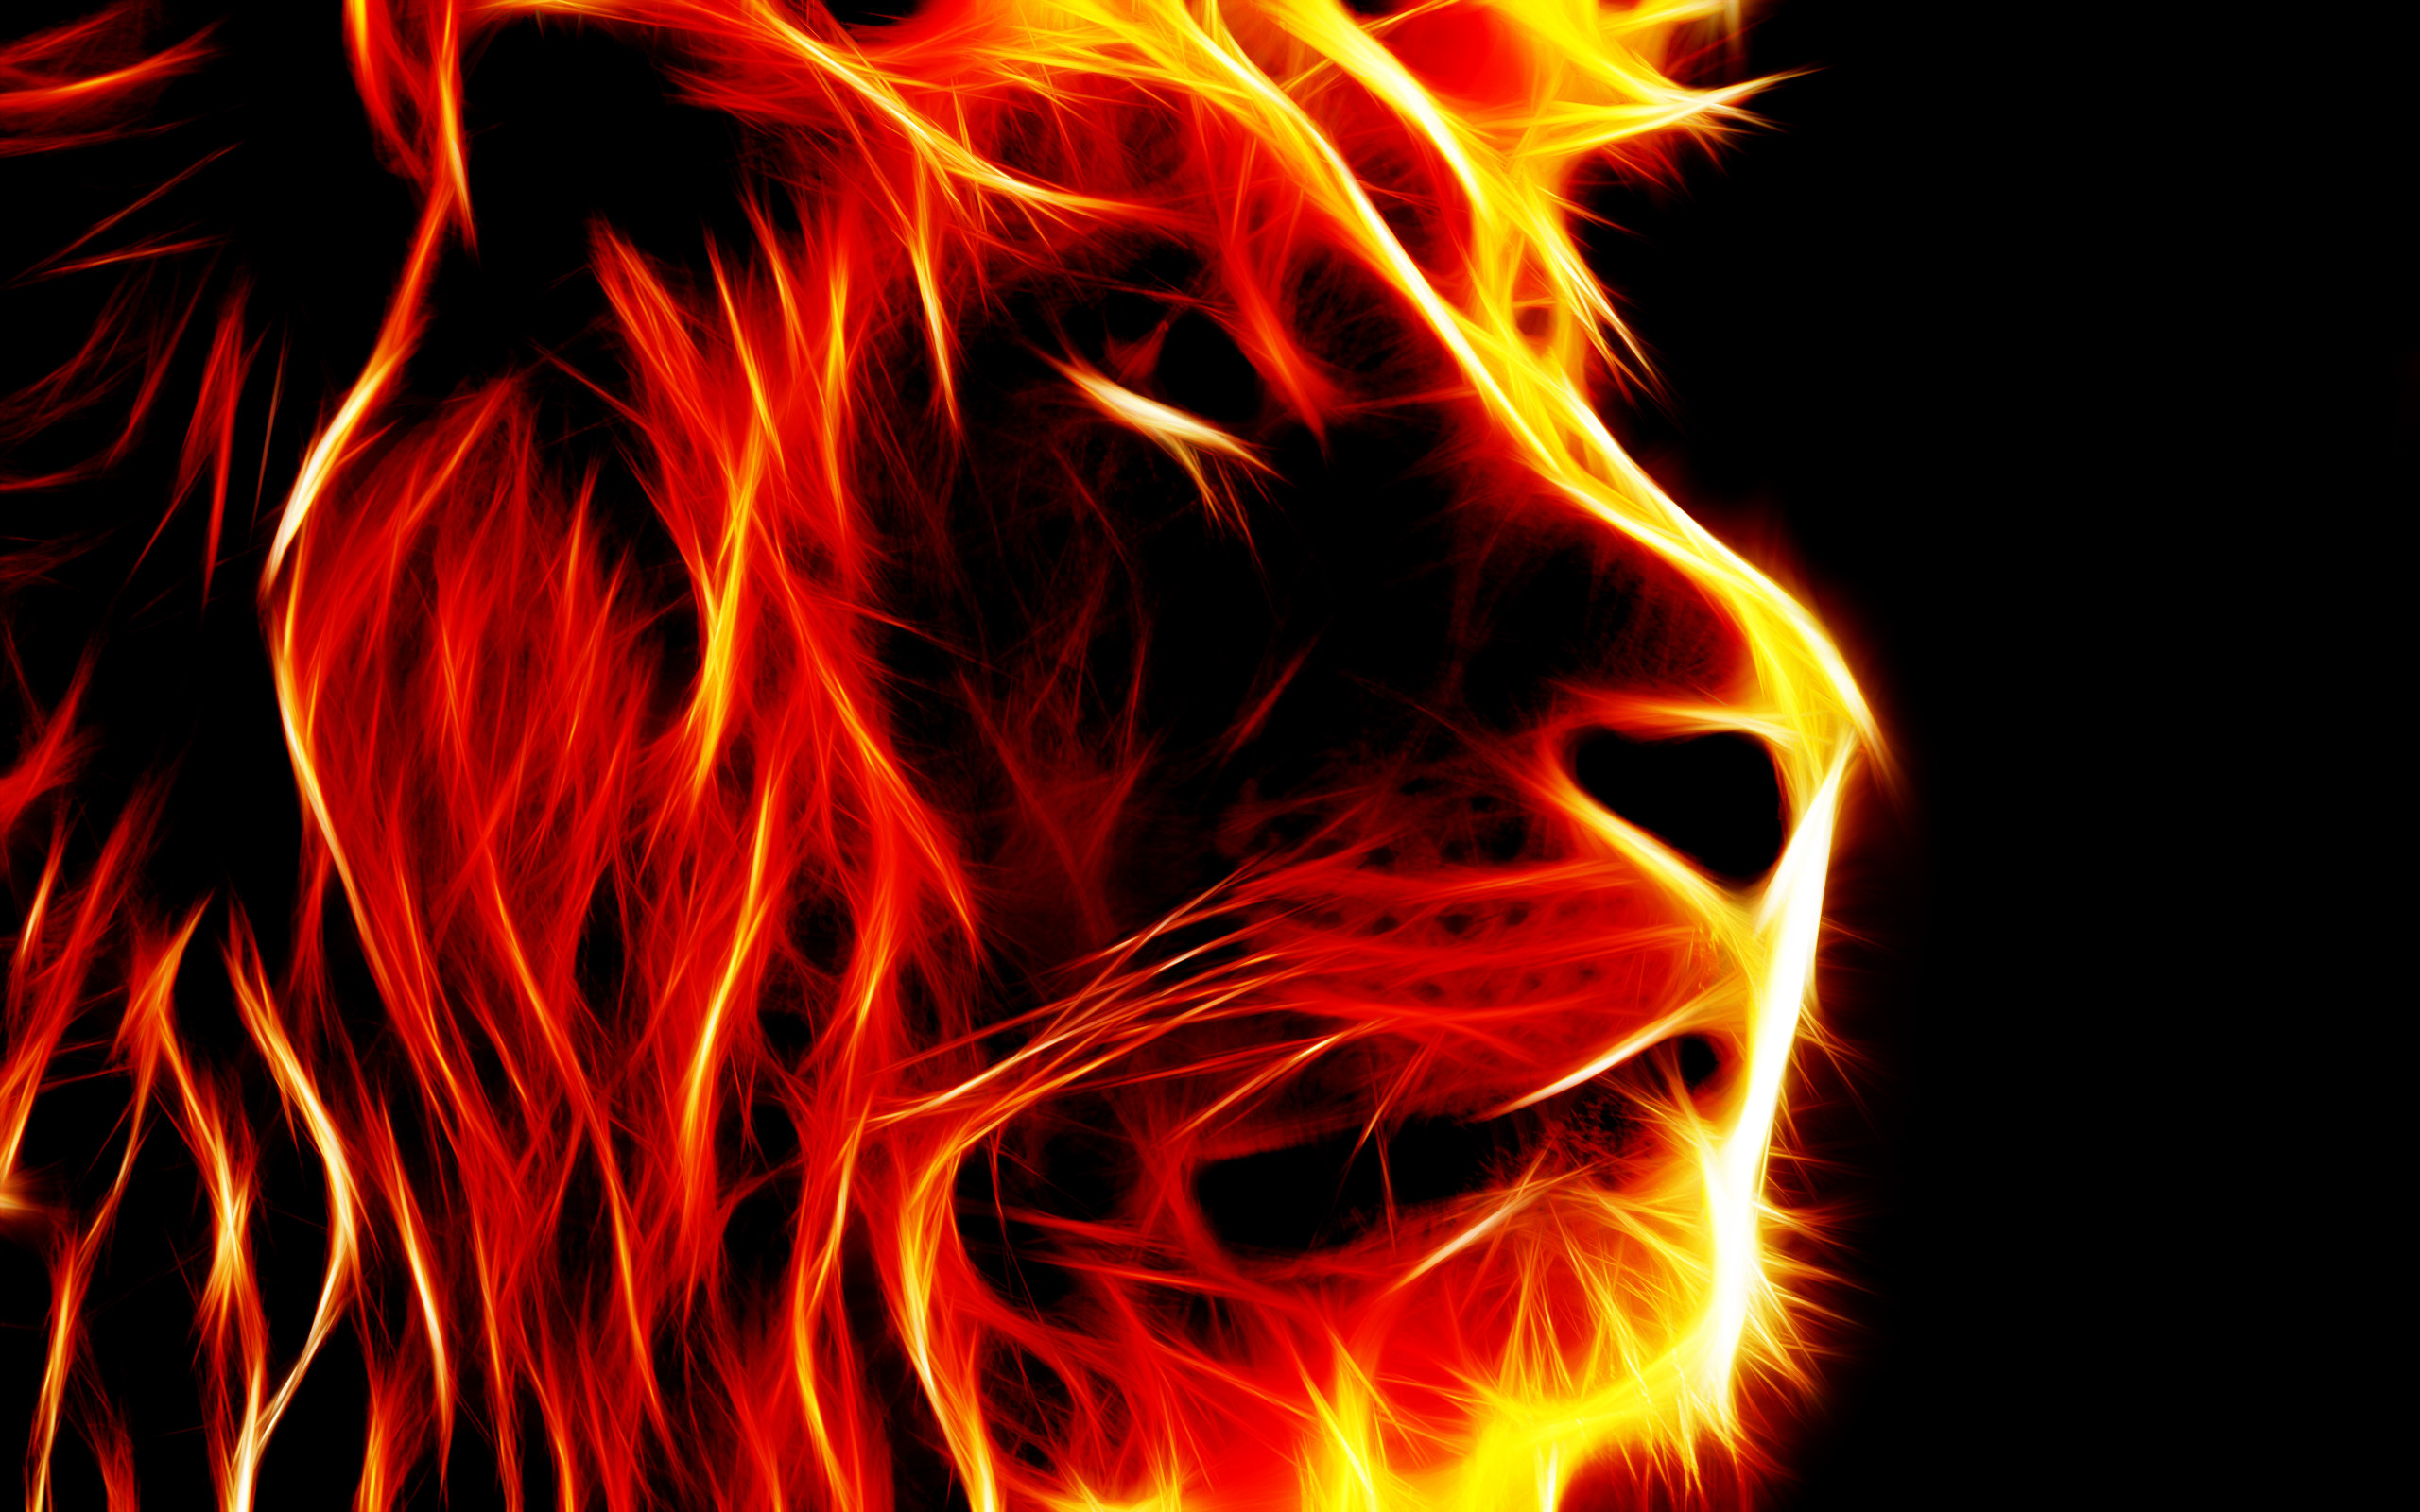 Fire Tiger Wallpaper posted by Zoey Sellers